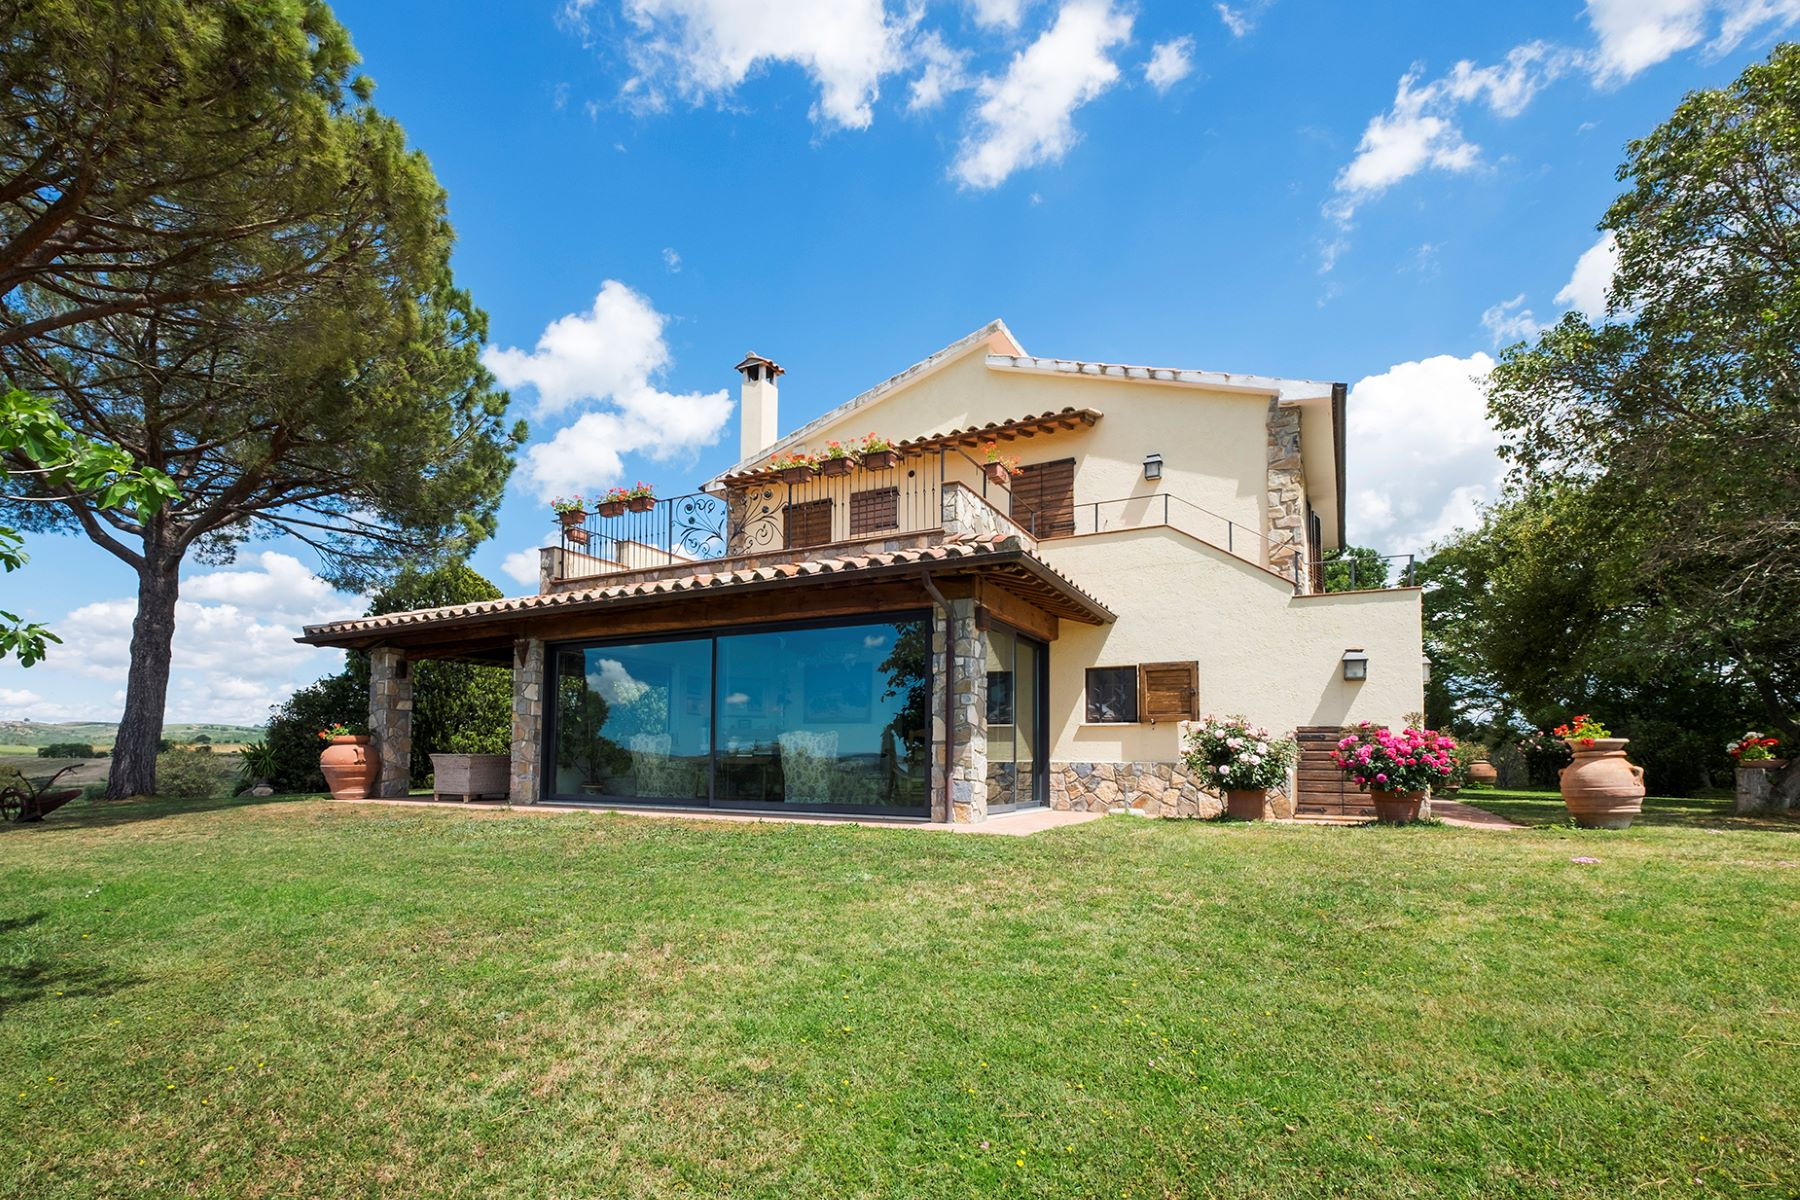 Vivienda unifamiliar por un Venta en Finely restored farmhouse in the Tuscan hills Strada consortile la Carla Magliano In Toscana, Grosseto 58051 Italia